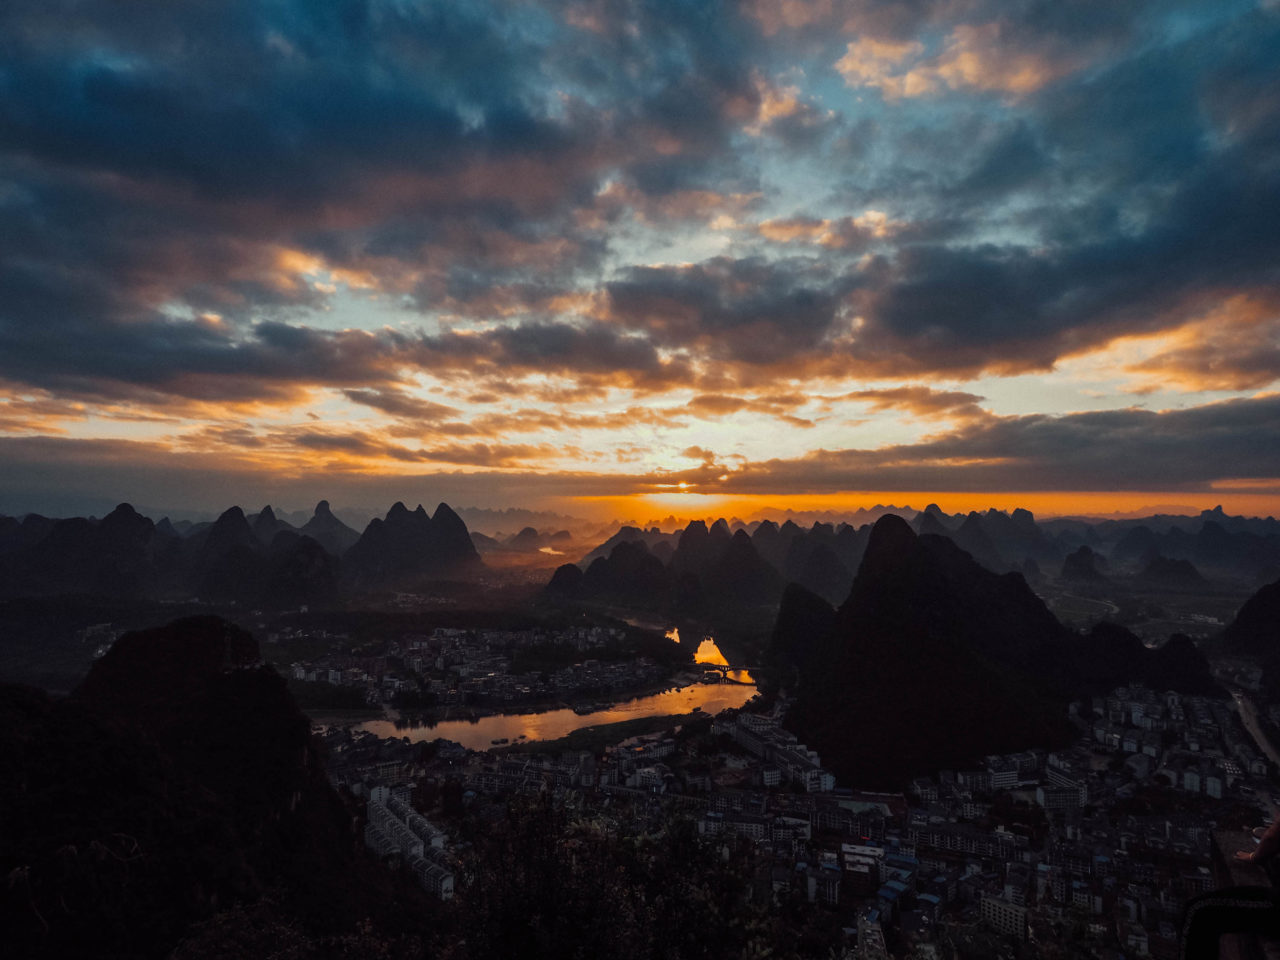 Sunset in China – Most Beautiful Picture